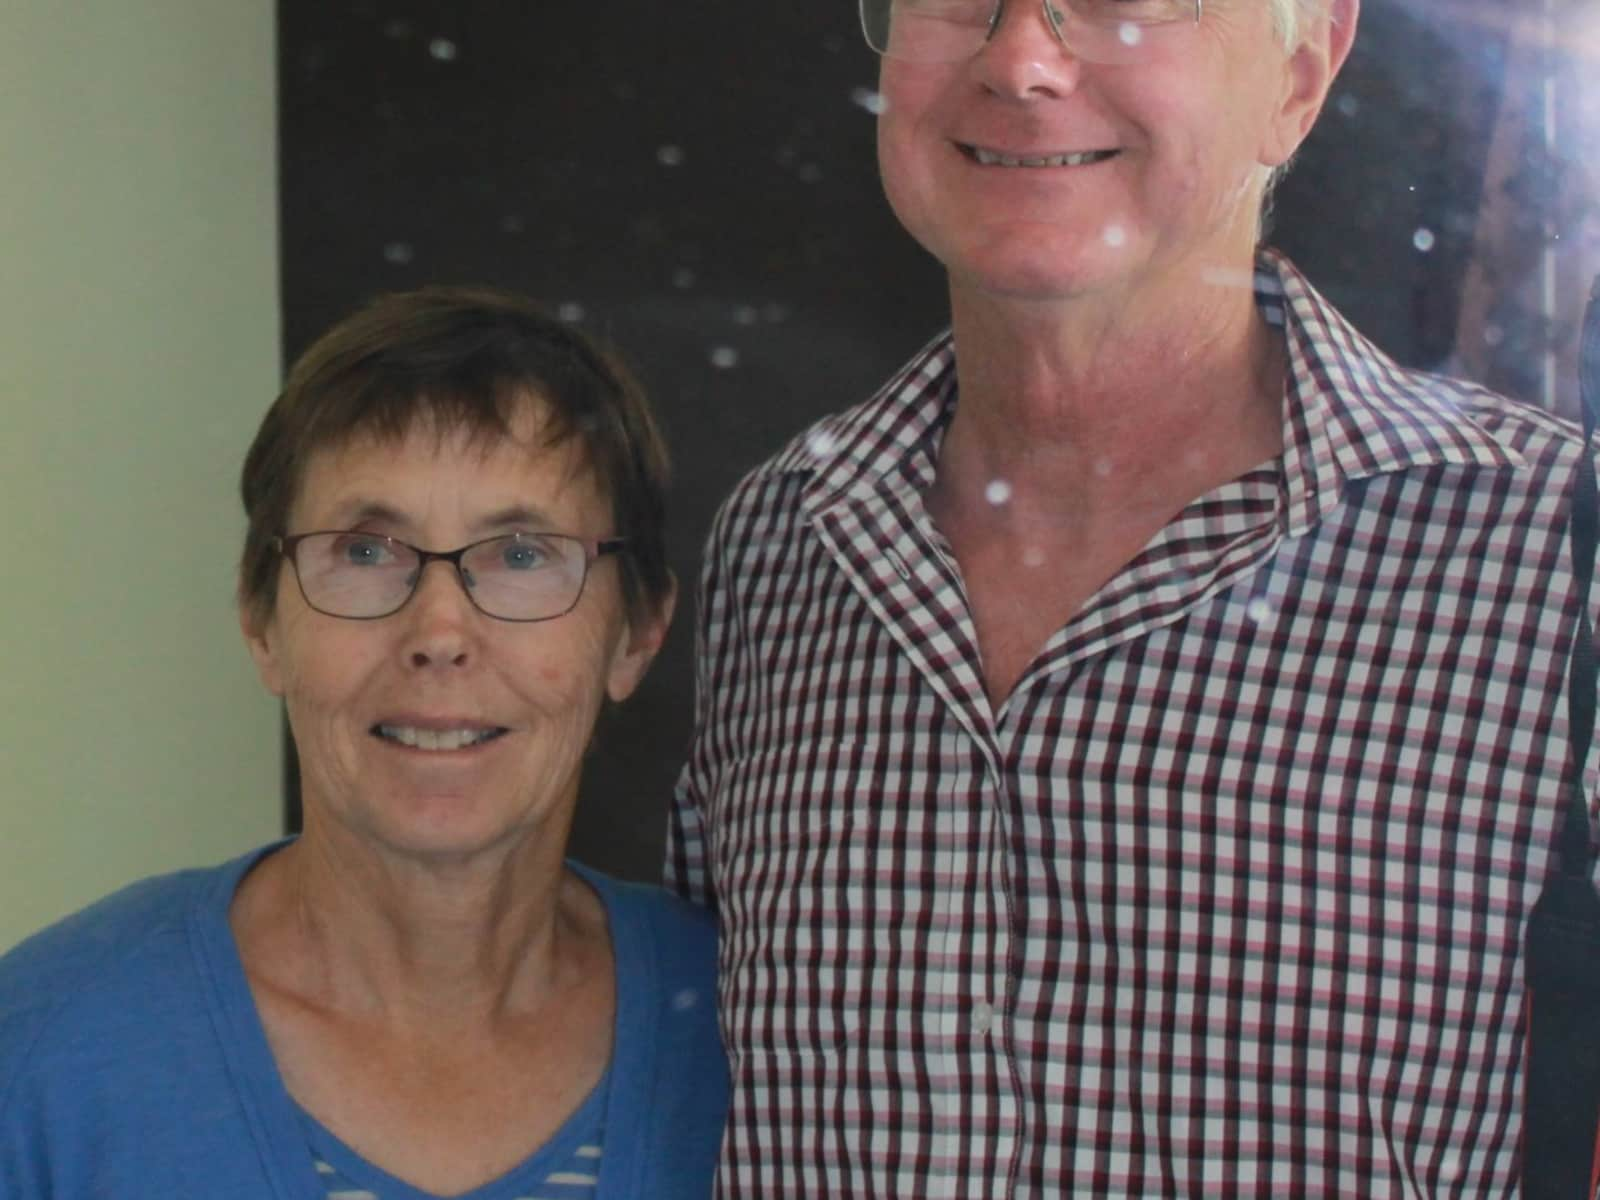 Peter and elaine & Peter from Nelson, New Zealand